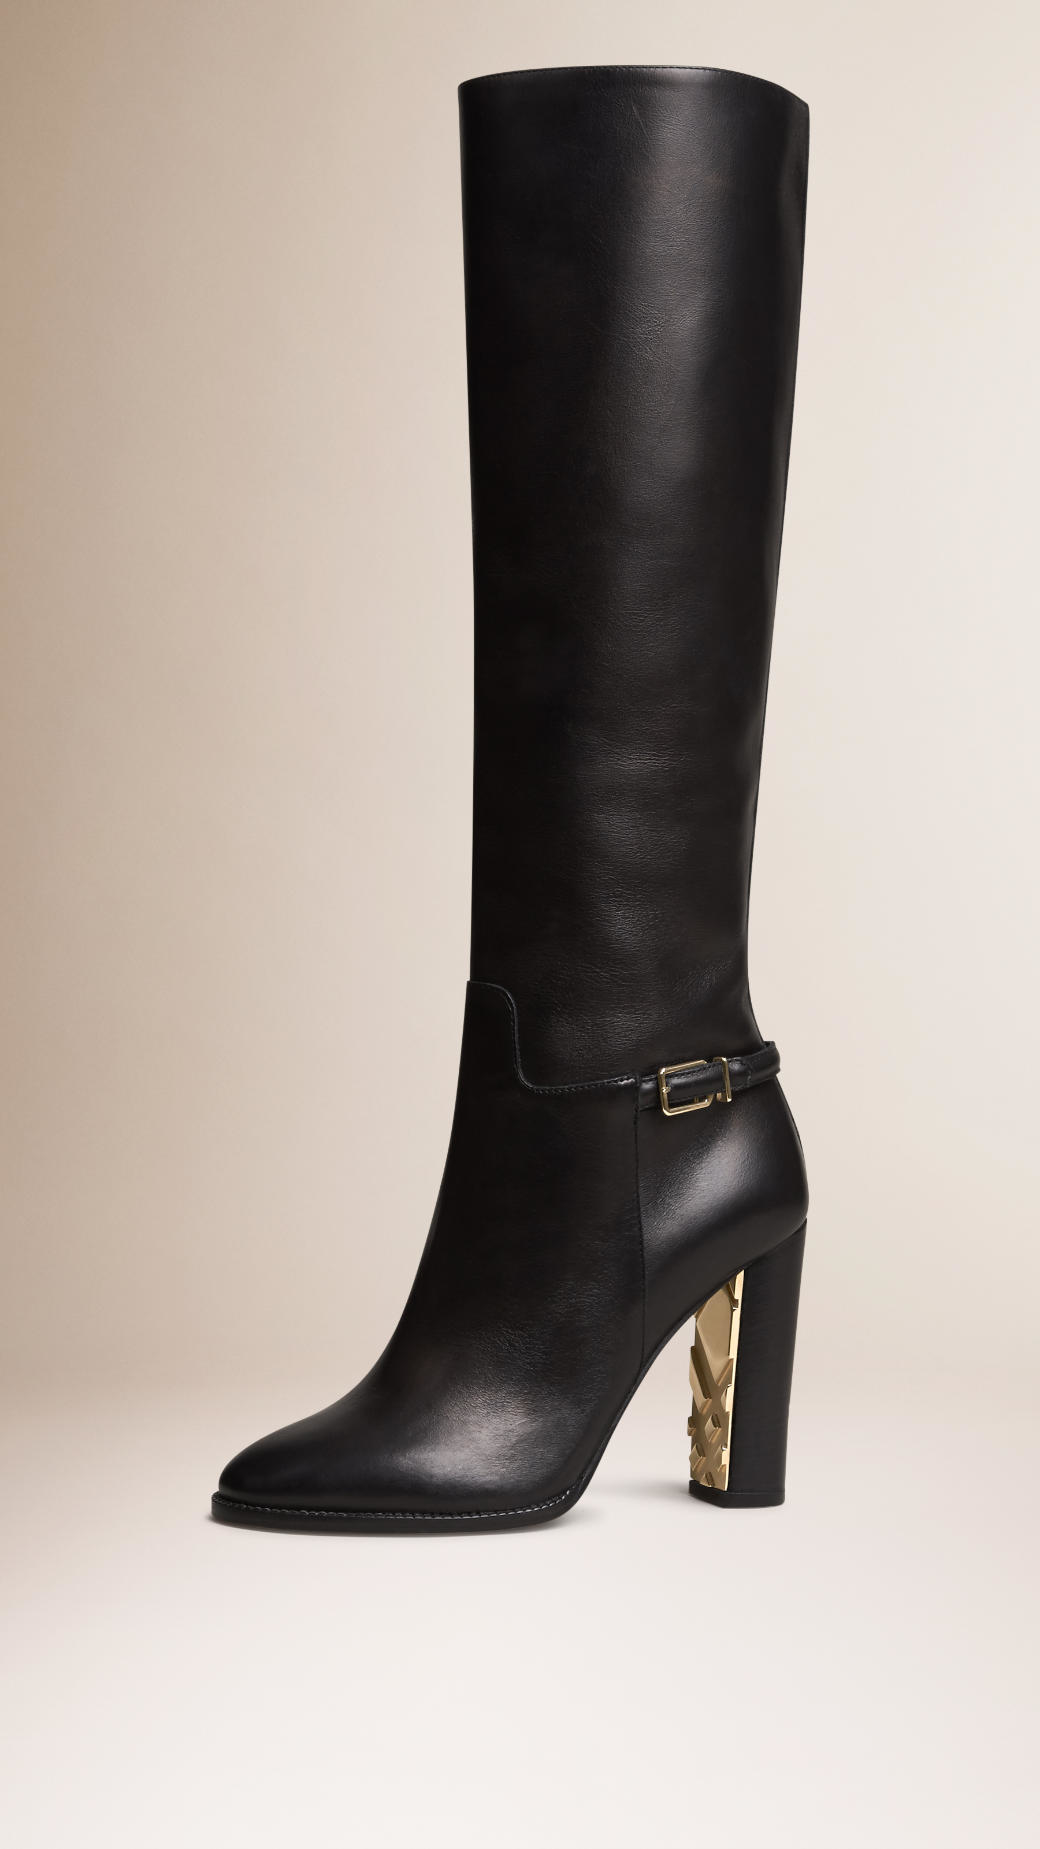 burberry knee high leather boots in black lyst